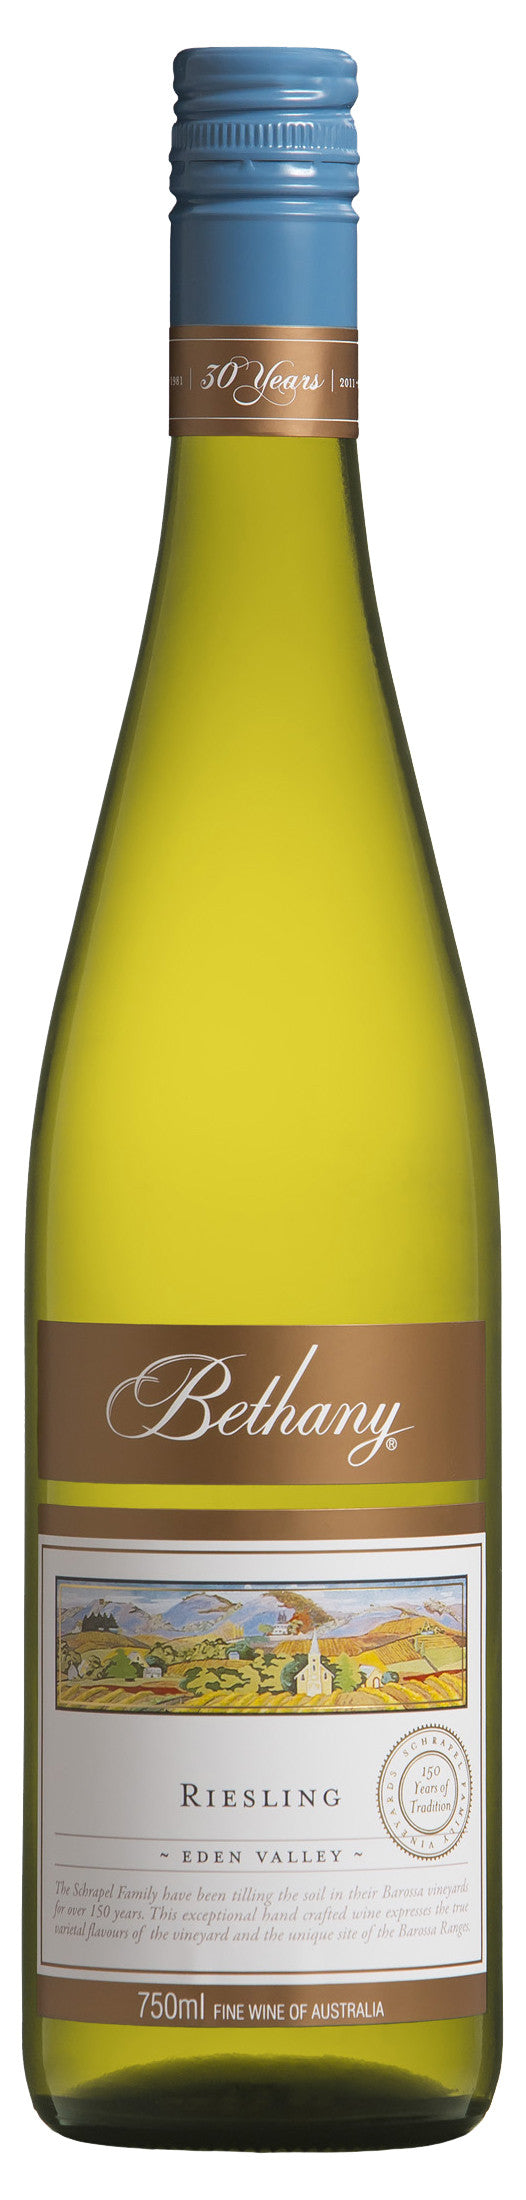 Bethany Eden Valley Riesling 2015